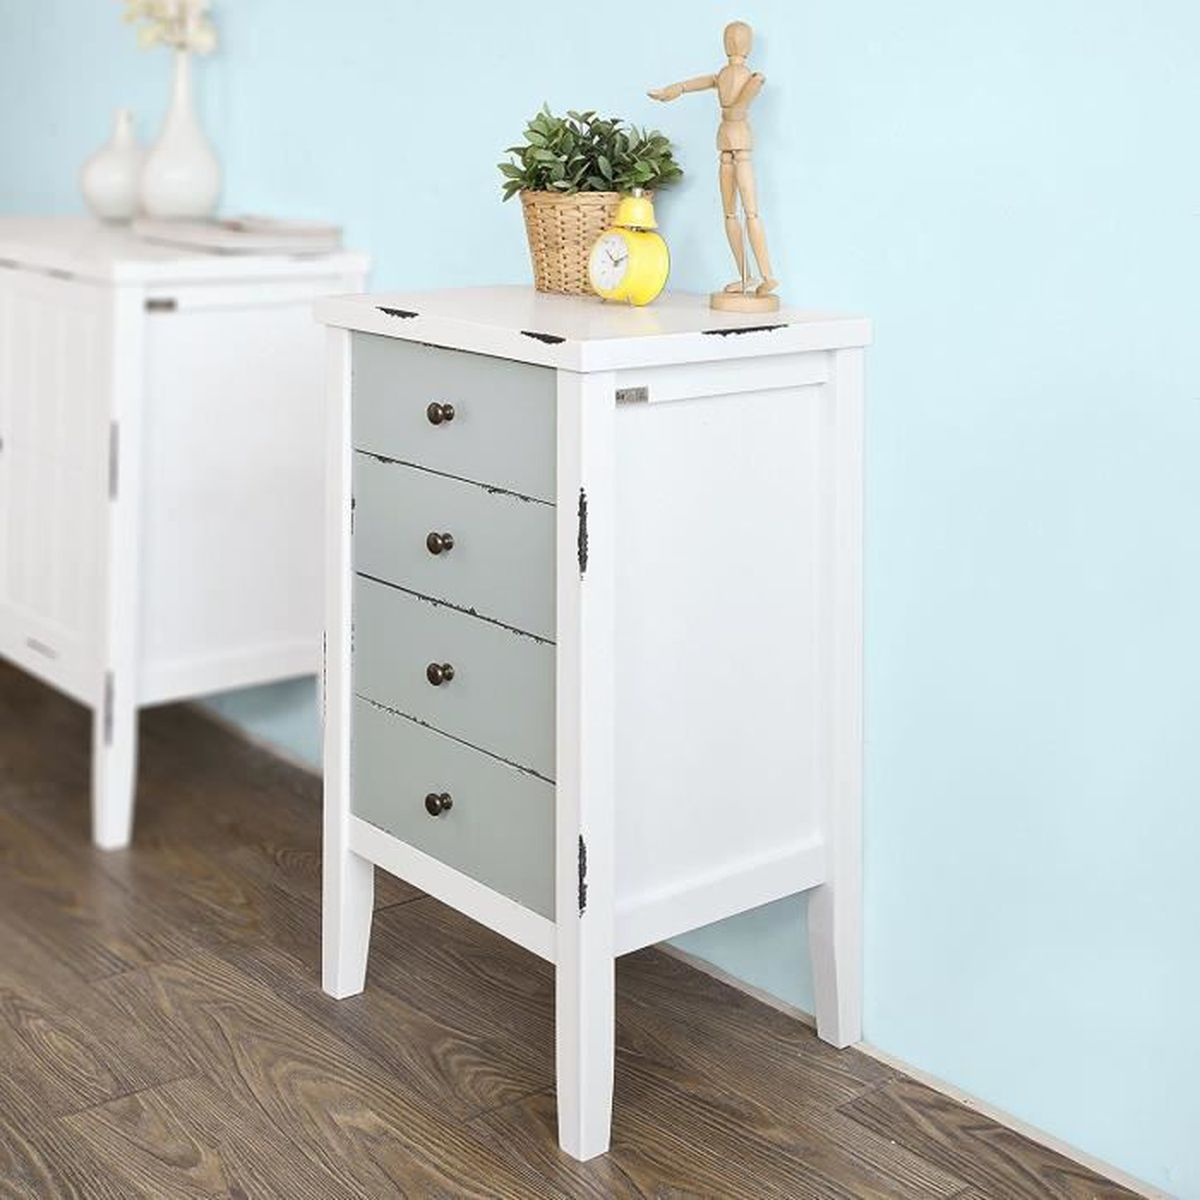 petite commode table de chevet table de nuit 4 tiroirs style shabby chic achat vente commode. Black Bedroom Furniture Sets. Home Design Ideas